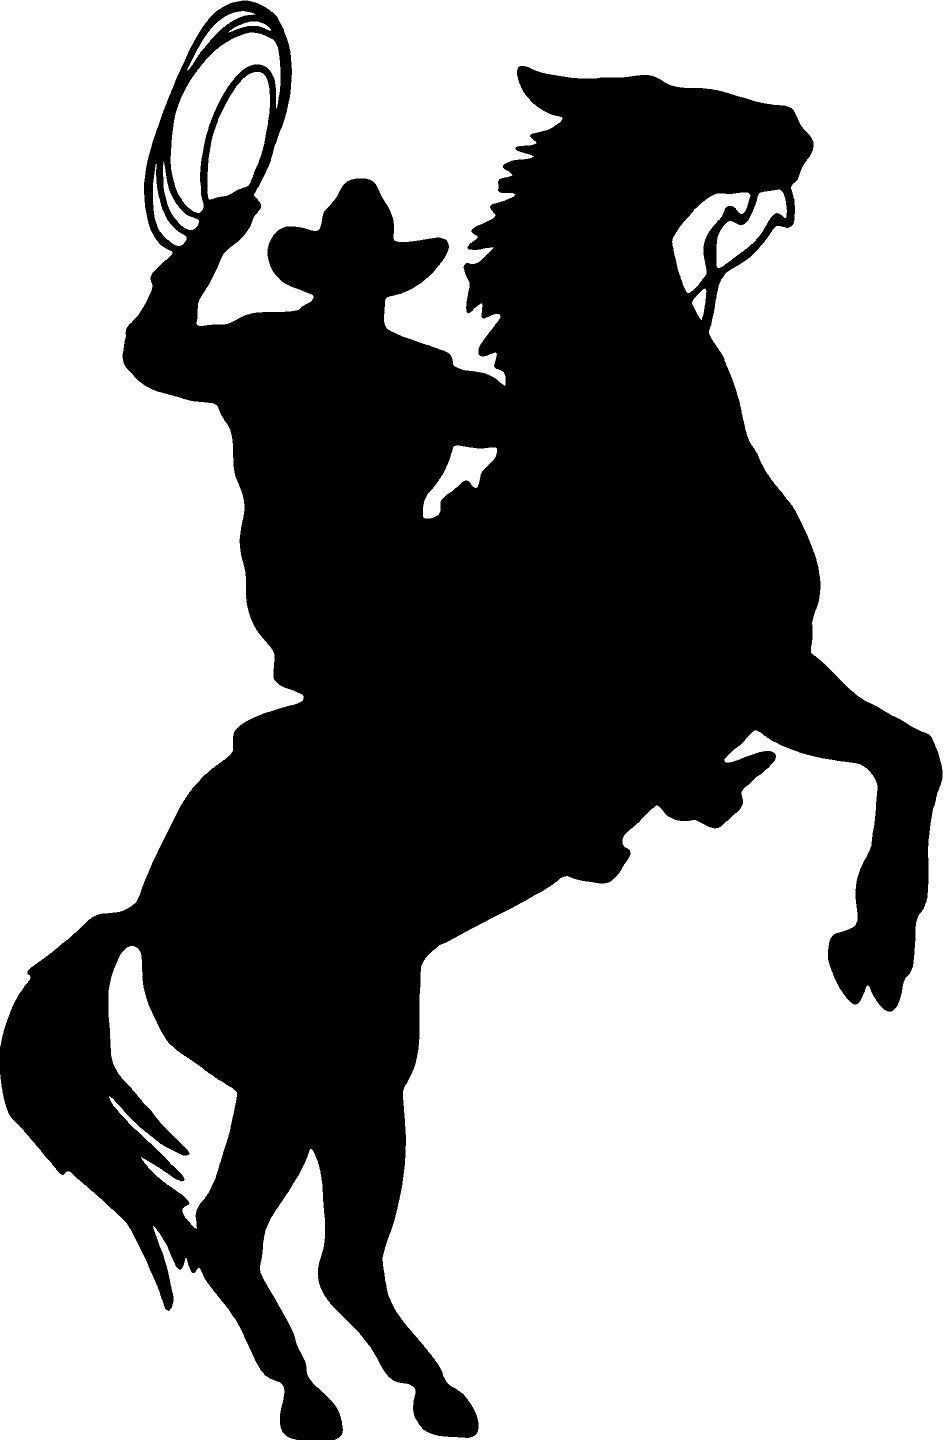 Cowboy silhouette clip art. Rodeo clipart western welcome jpg black and white library